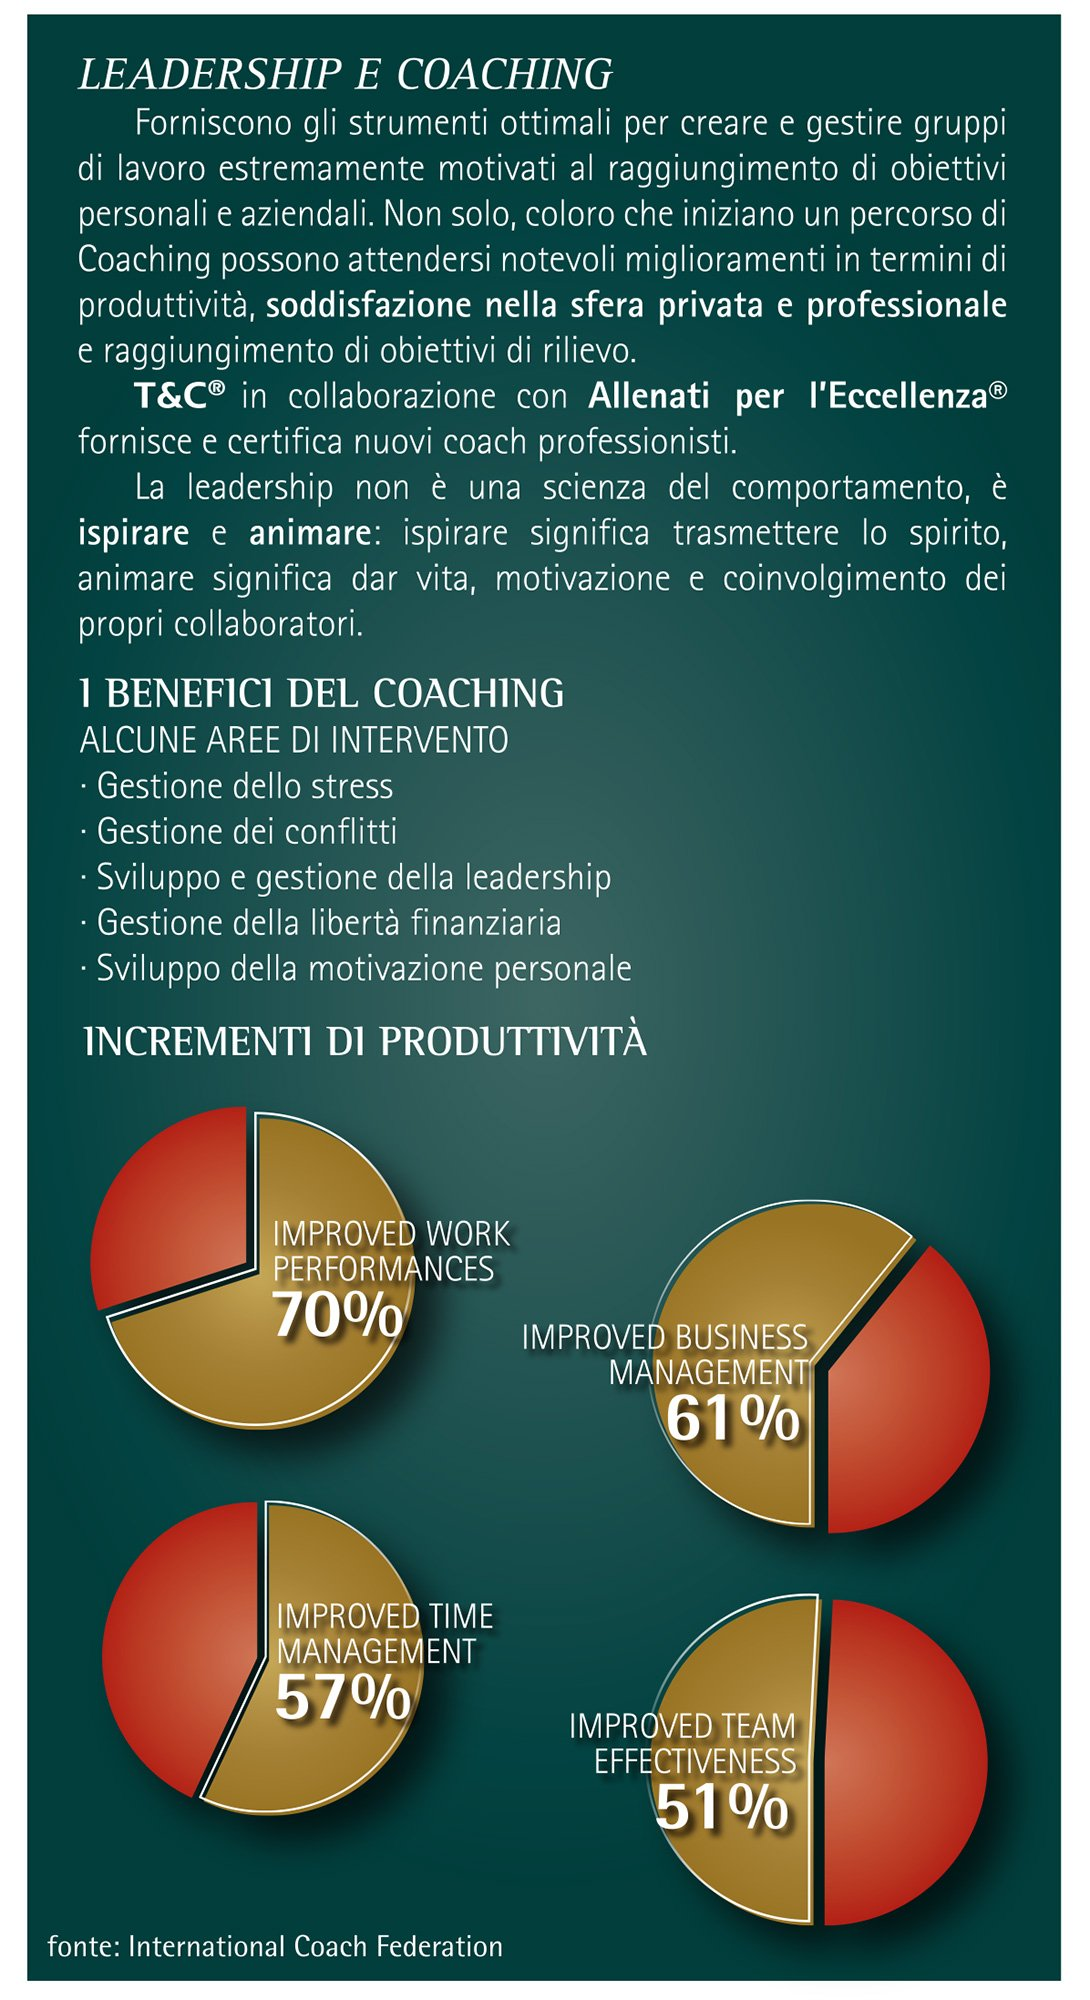 Grafico Leadership e Coaching - T&C | Training and Consulting